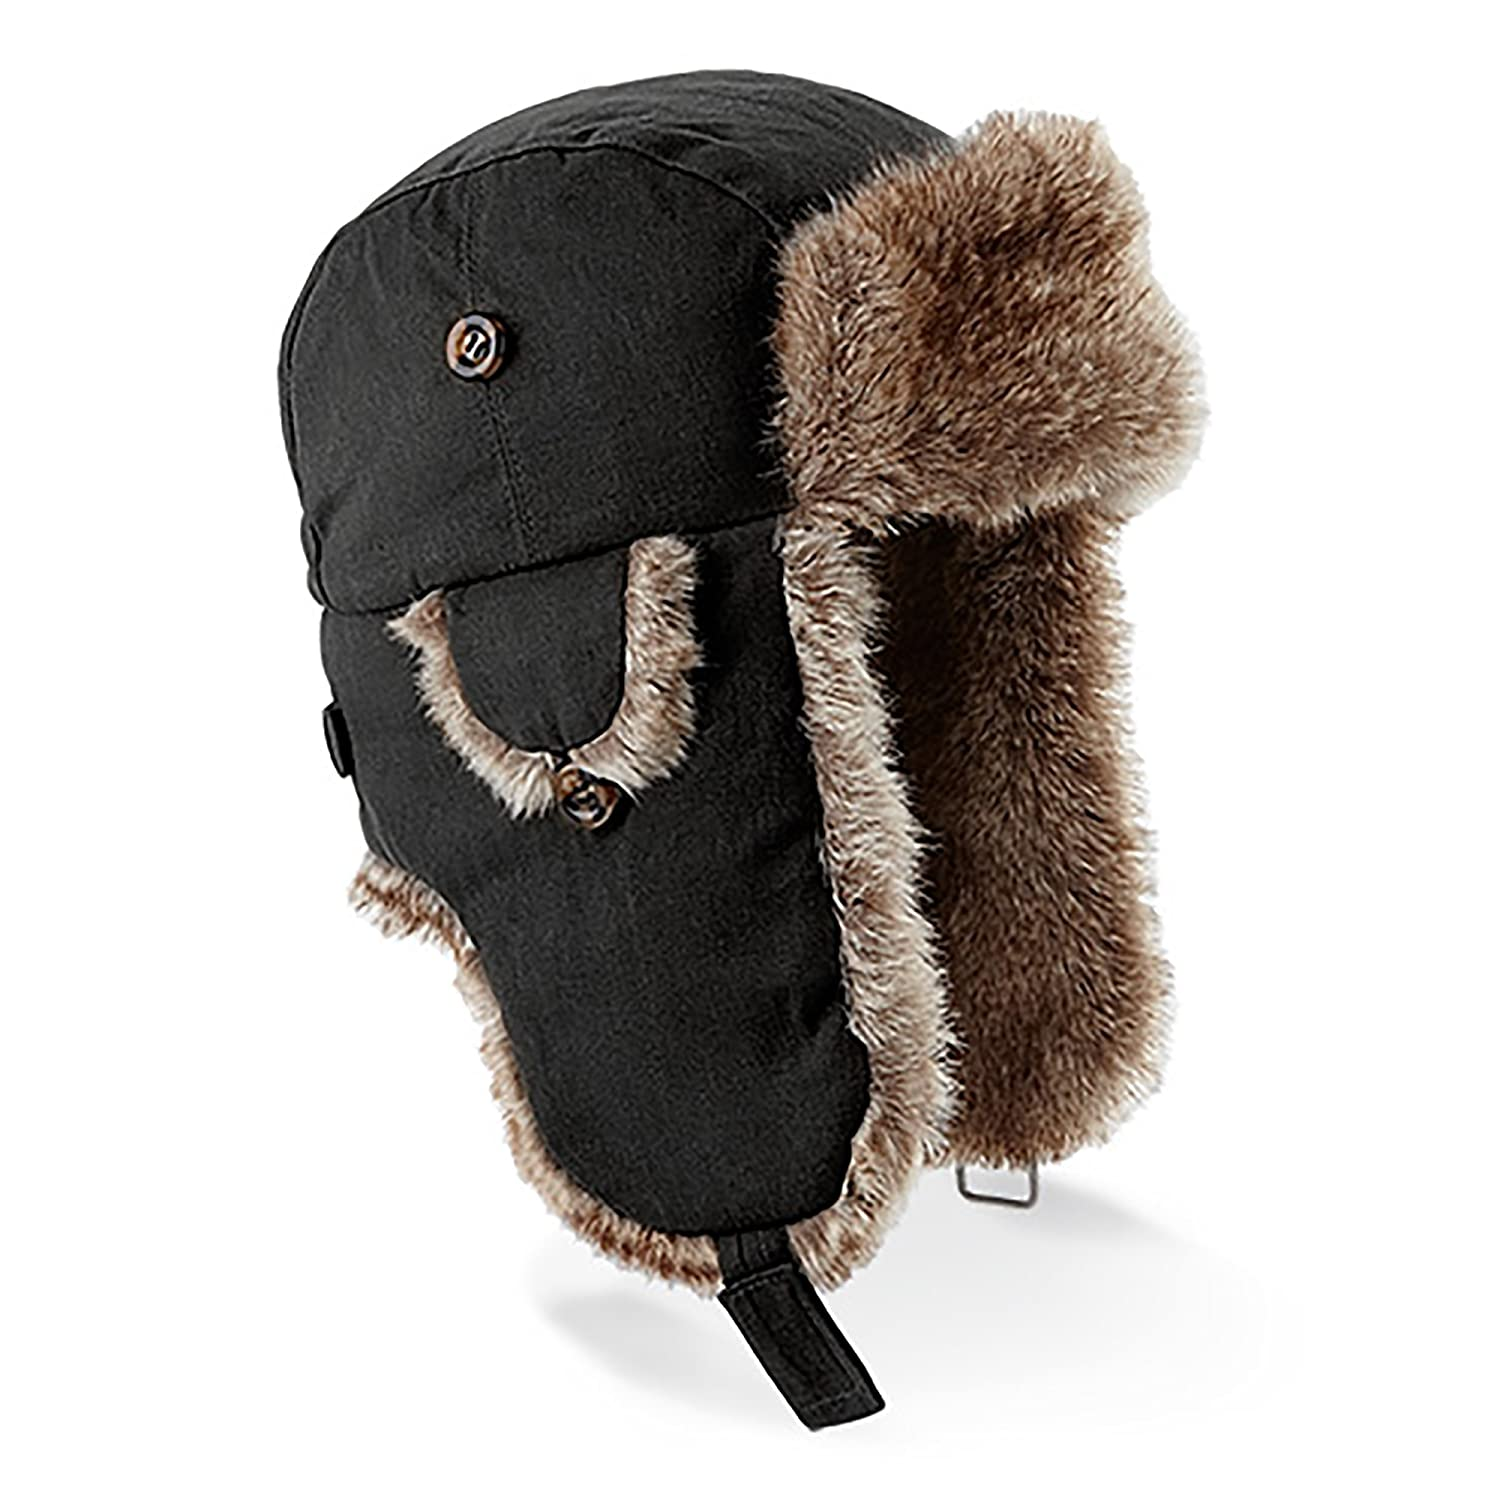 Beechfield Unisex Winter Urban Trapper Hat